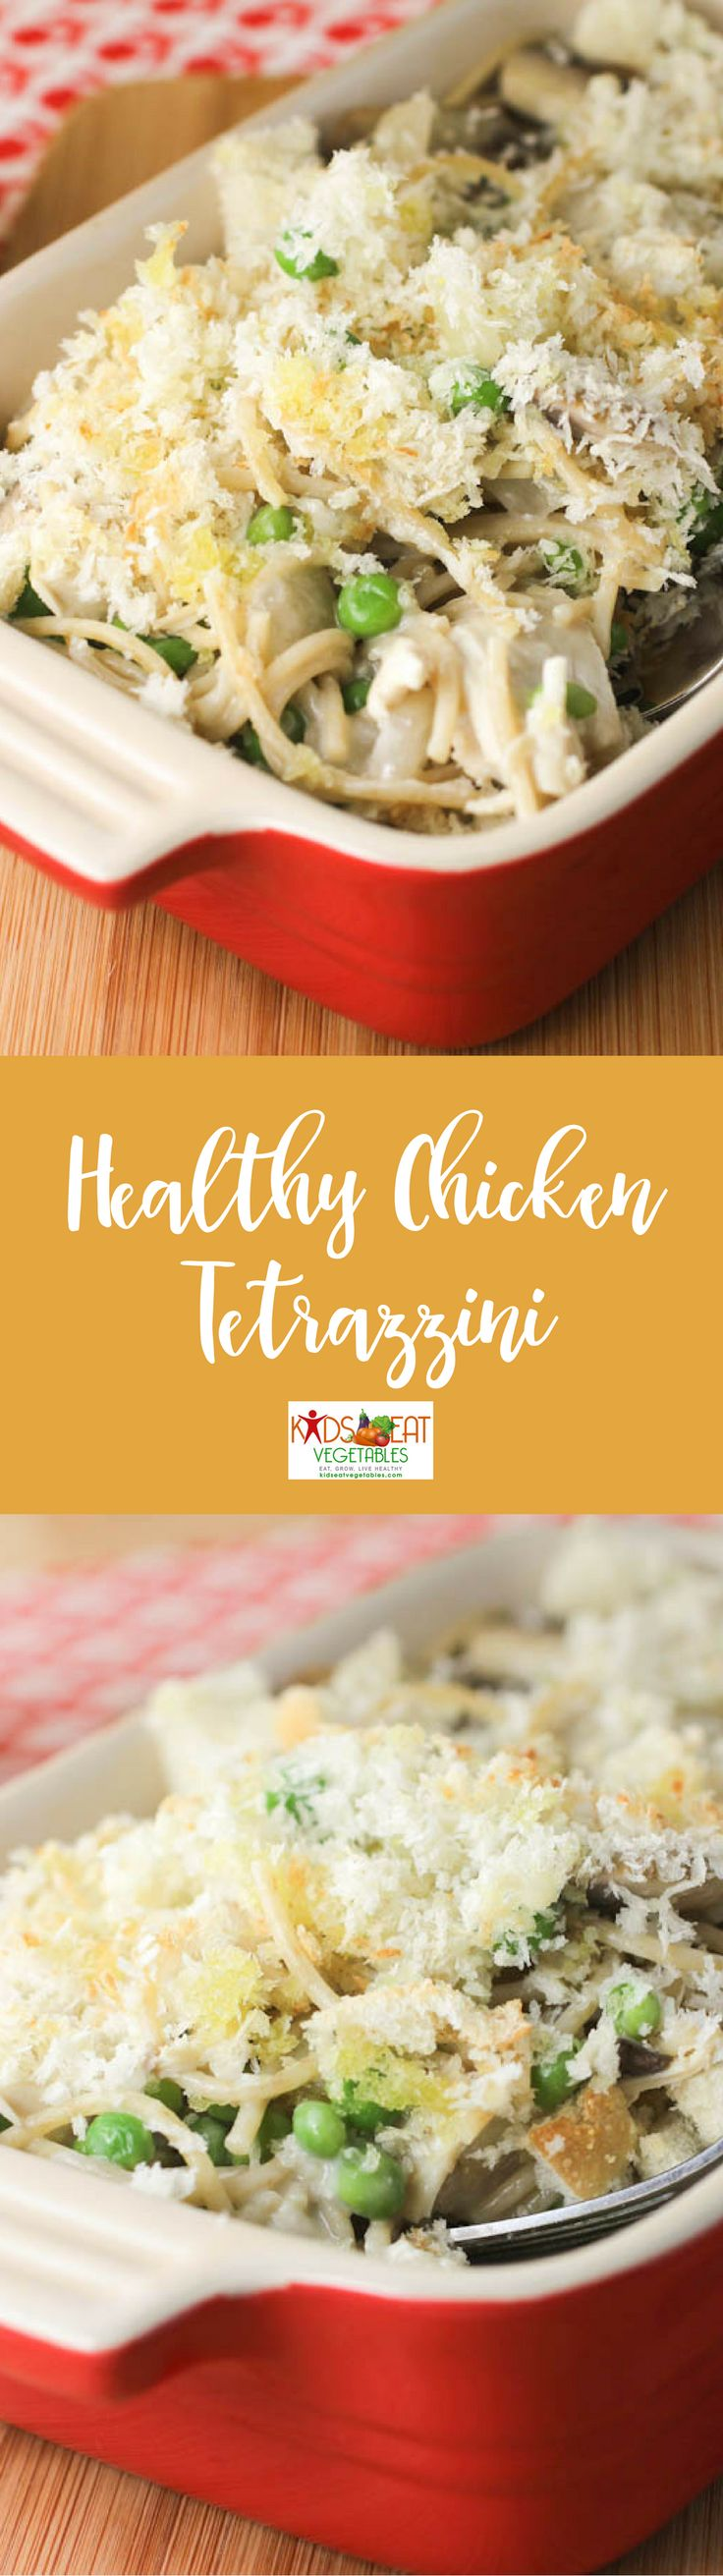 The 25 best chicken tetrazzini recipes ideas on pinterest chicken tetrazzini forumfinder Images